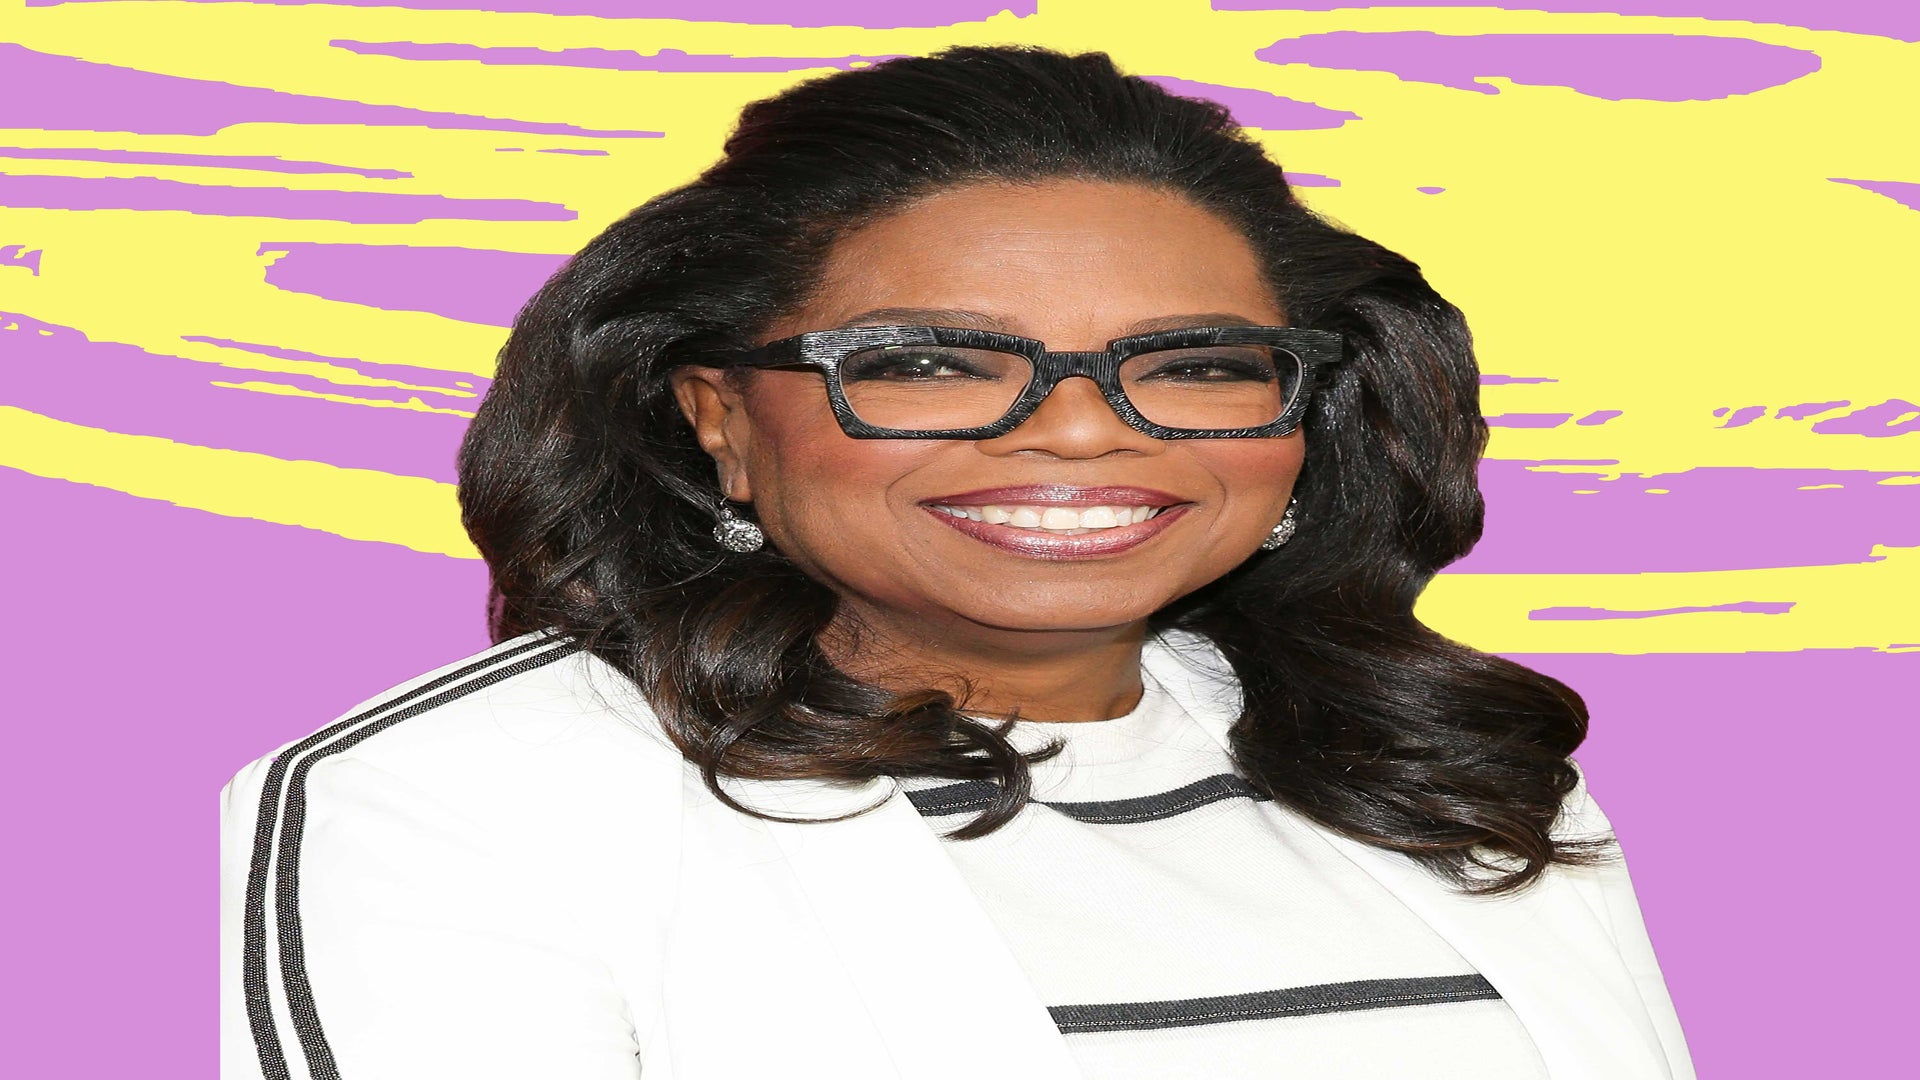 The Quick Read: Oprah Wants Scammers To Stop Using Her Good Name…AND MORE